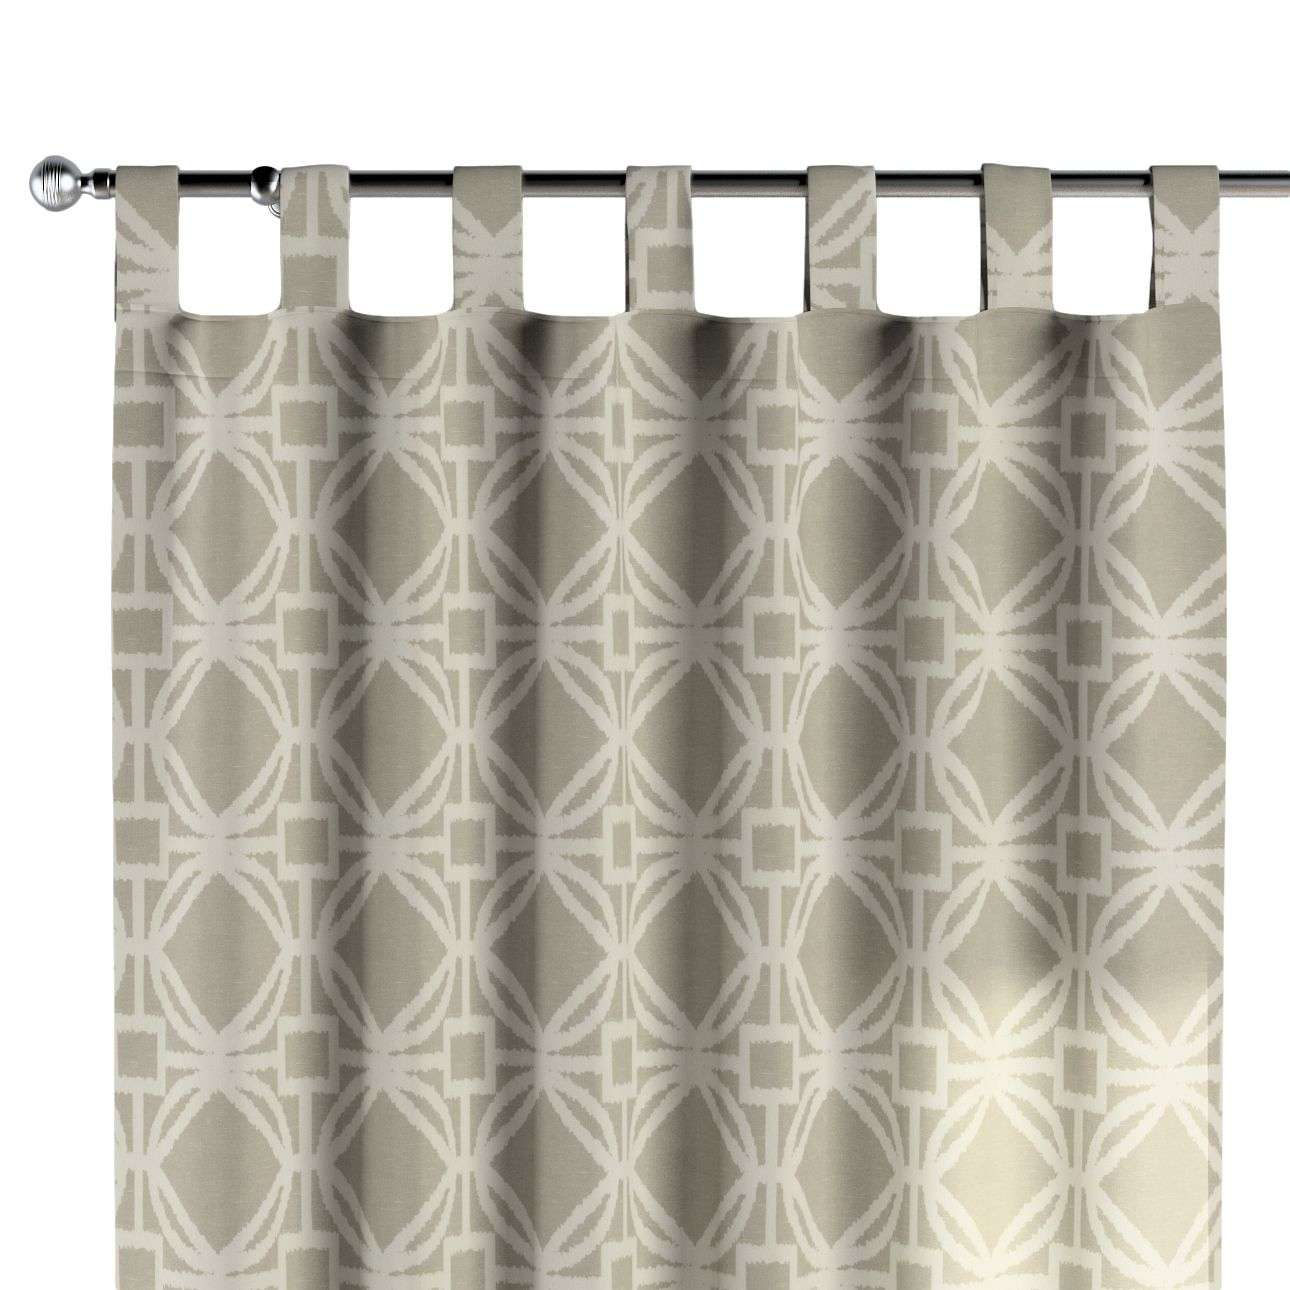 Tab top curtains 130 × 260 cm (51 × 102 inch) in collection Comics/Geometrical, fabric: 141-56